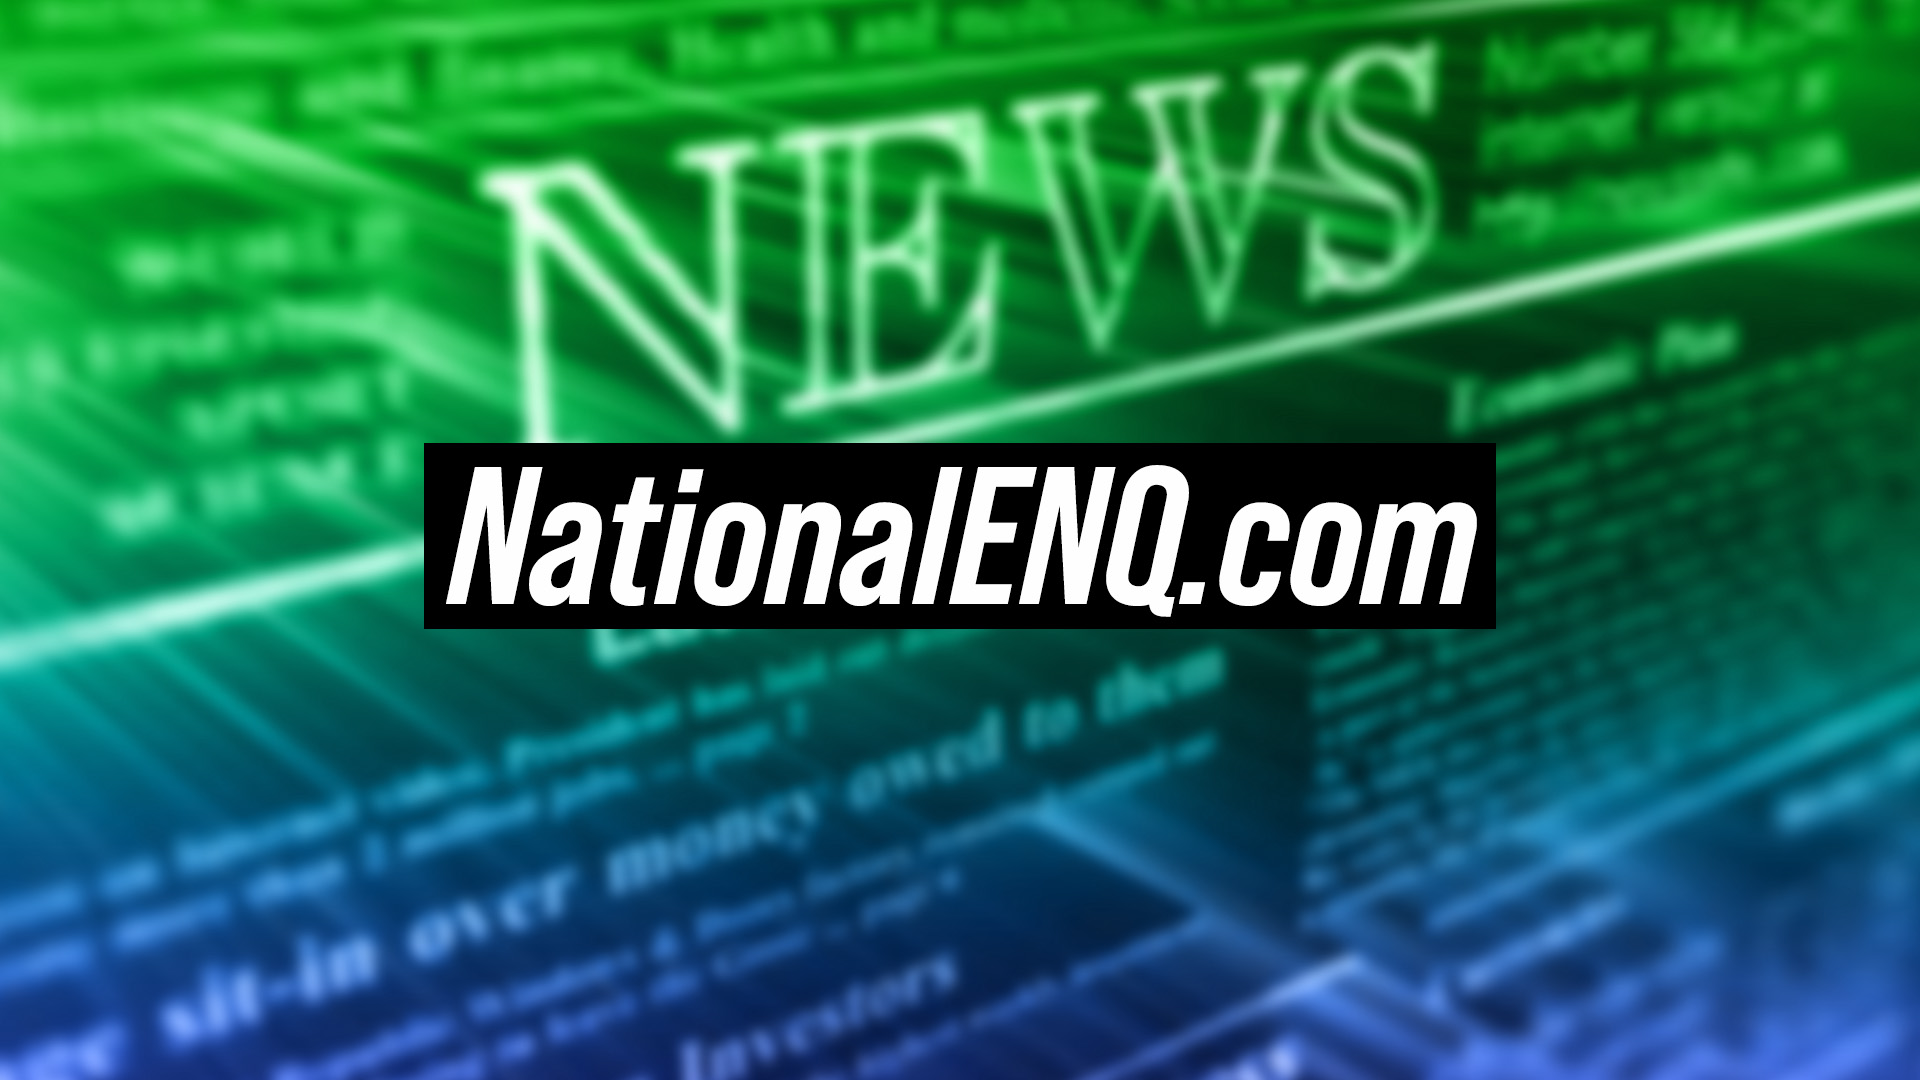 National ENQ in Competition with National Enquirer – Really?